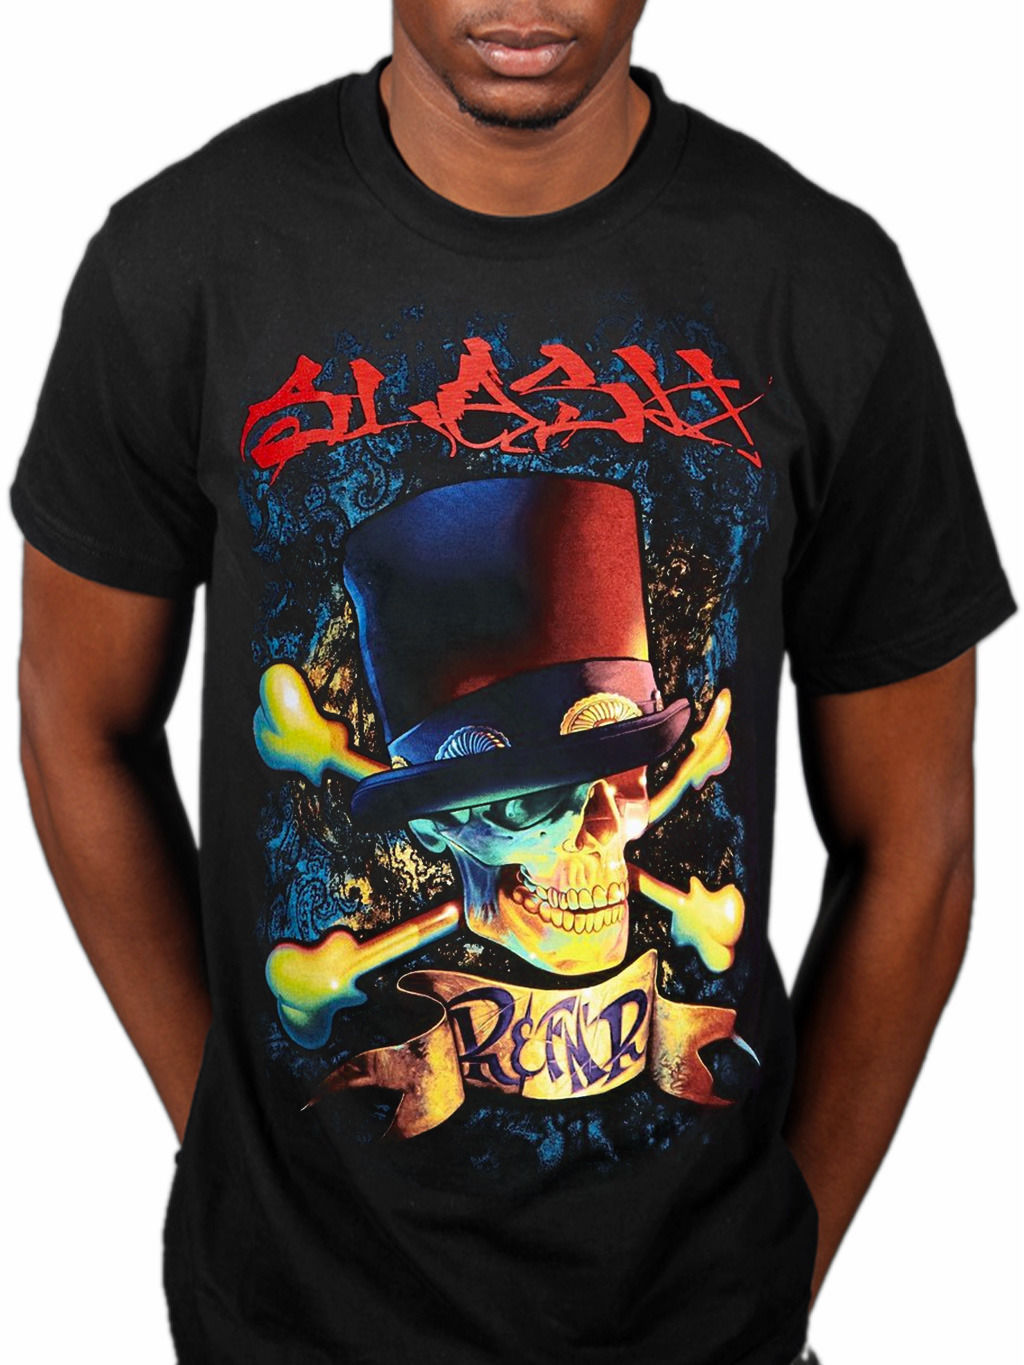 Slash R Amp FNR T-Shirt World On Fire Made In Stoke Apocalyptic Love